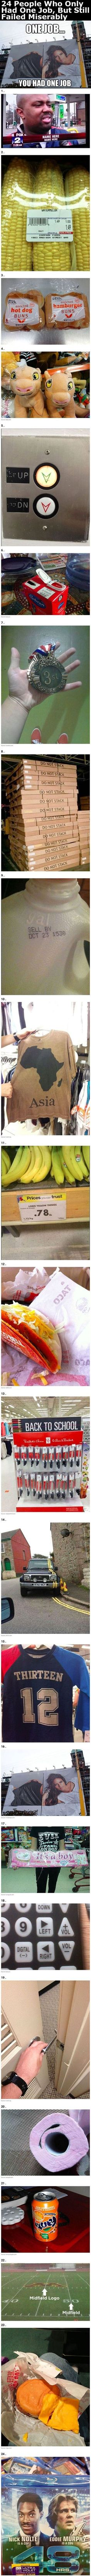 24 People Who Only Had One Job, But Still Failed Miserably funny memes lol hilarious humor funny pictures wtf funny images humor, funny quotes Wtf Funny, Funny Fails, Funny Humor, Pranks Hilarious, Funny Stuff, Funny Cartoons, Job Humor, Funny Drunk, Funny Work